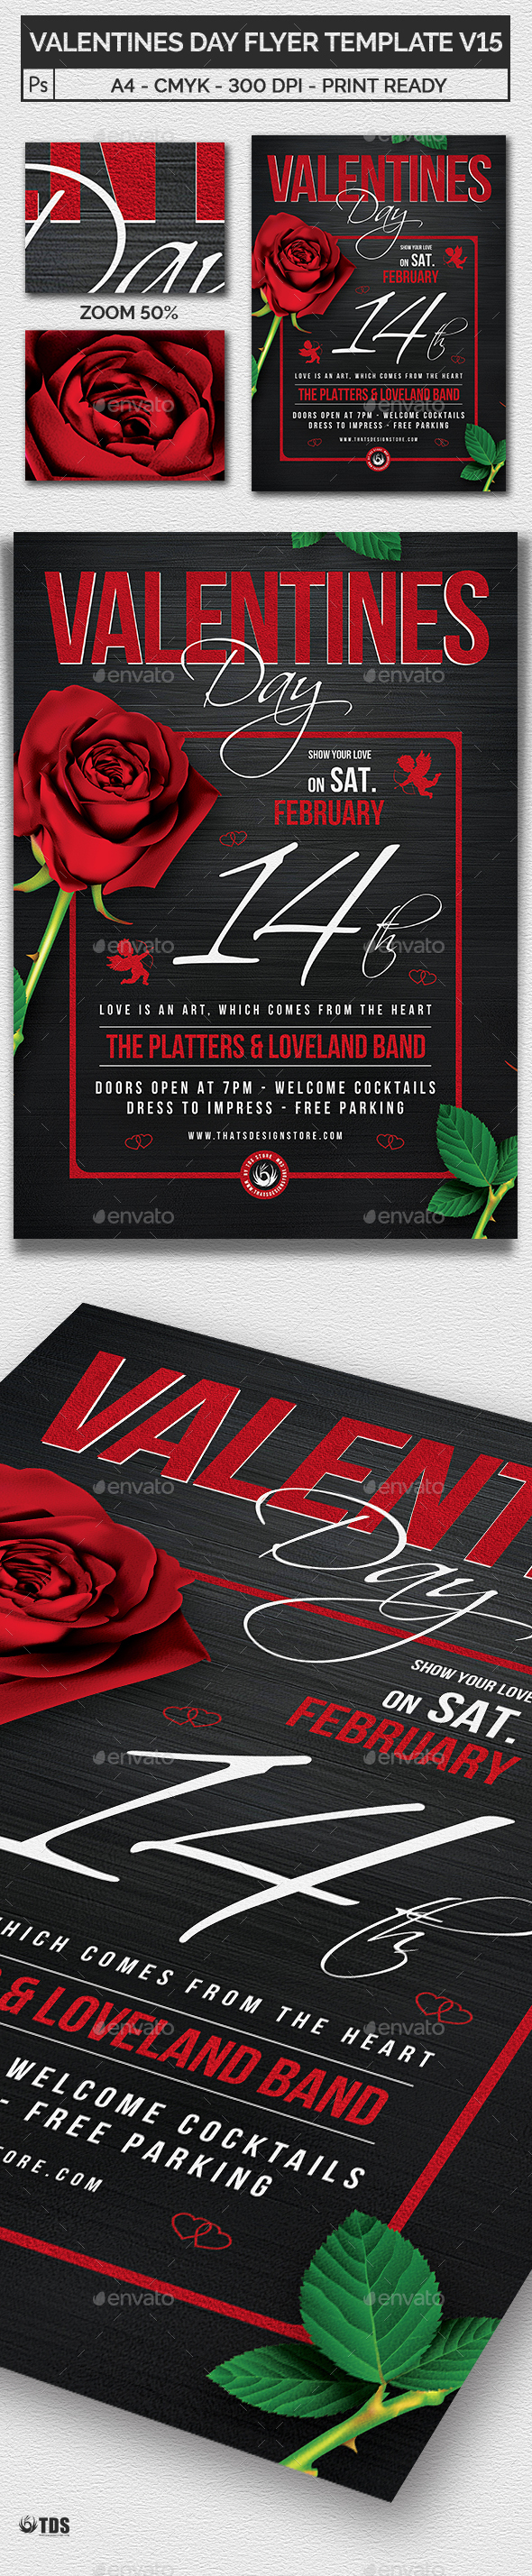 Valentines Day Flyer Template V15 - Clubs & Parties Events